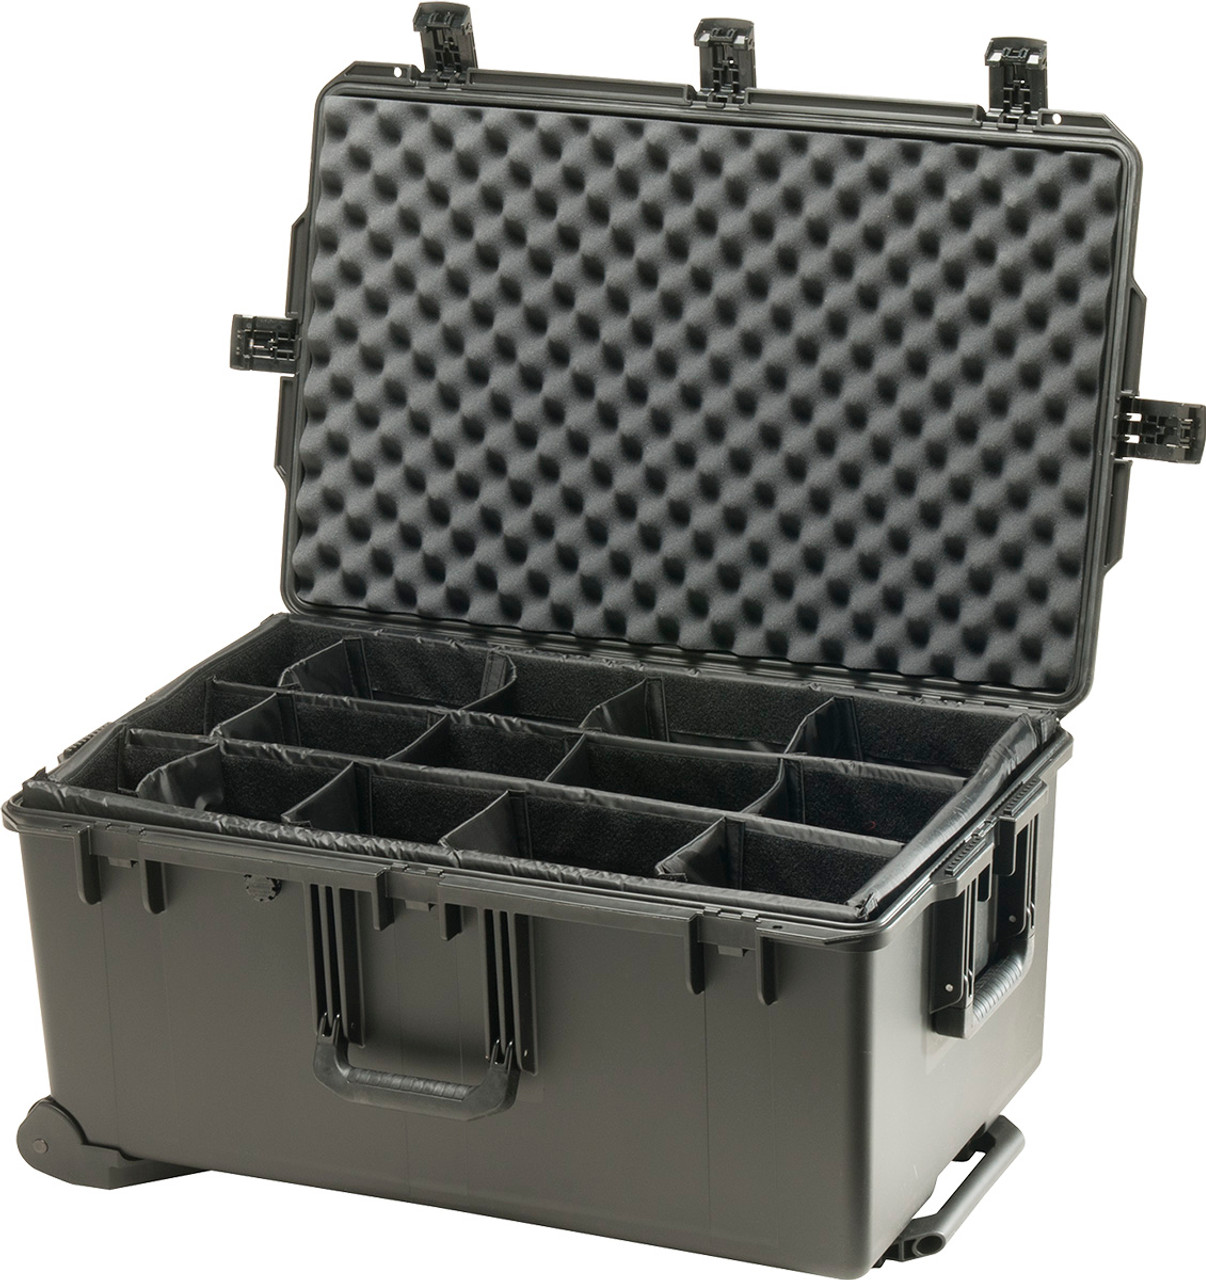 Pelican iM2975 Storm Large Travel Case Hard Case with Optional Foam Insert or Padded Divider, Available in Black, or OD Green, 32 x 21 x 16, 36 lbs (26 lbs without inserts)